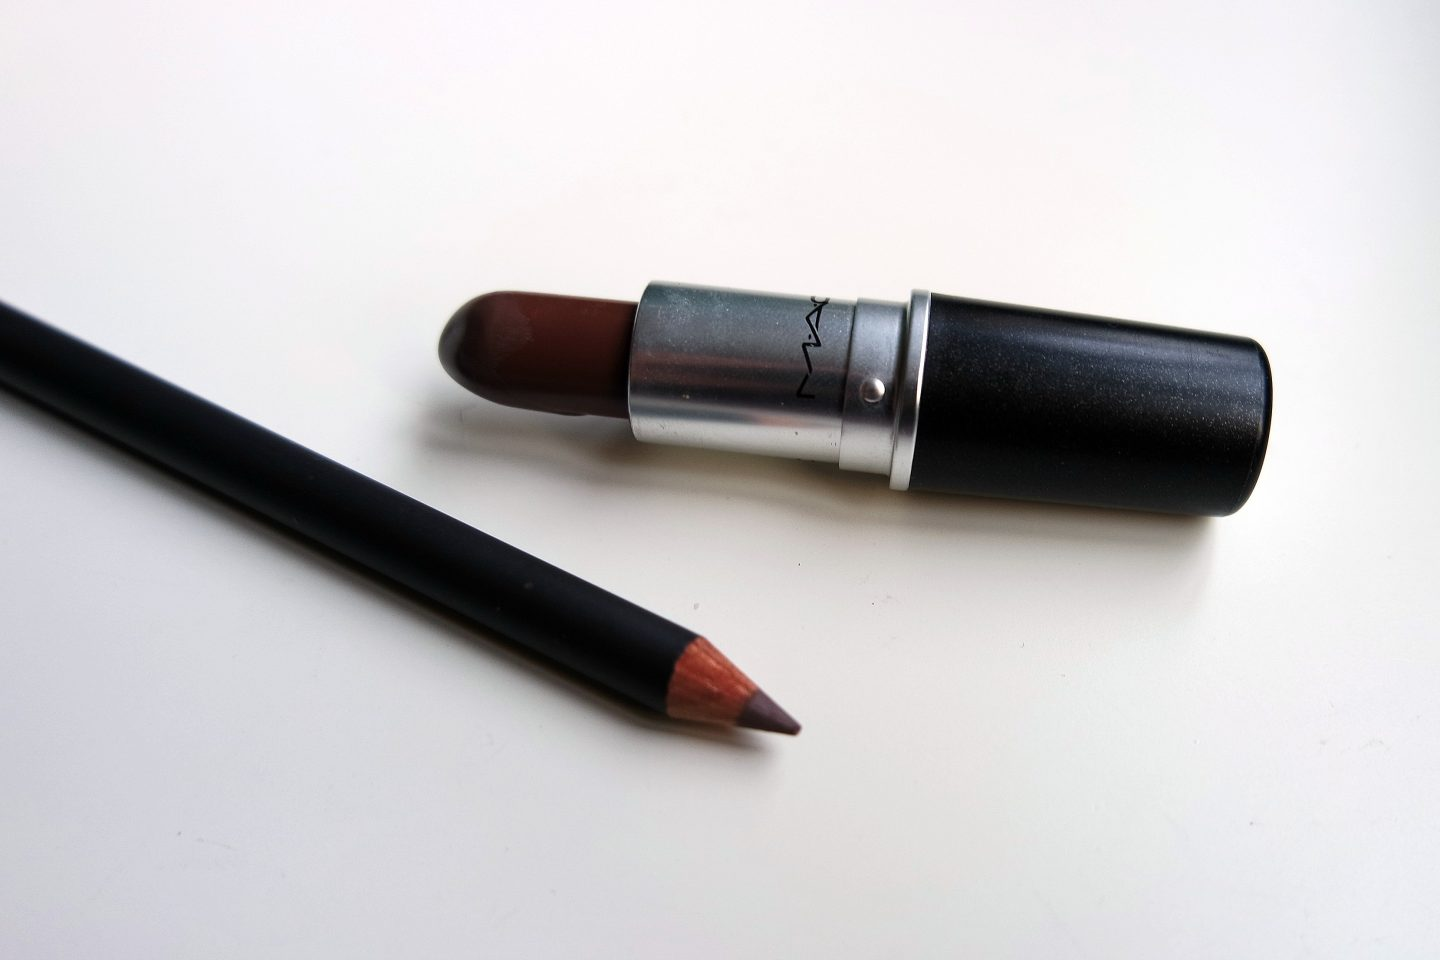 MAC Stone Lipstick and Pencil